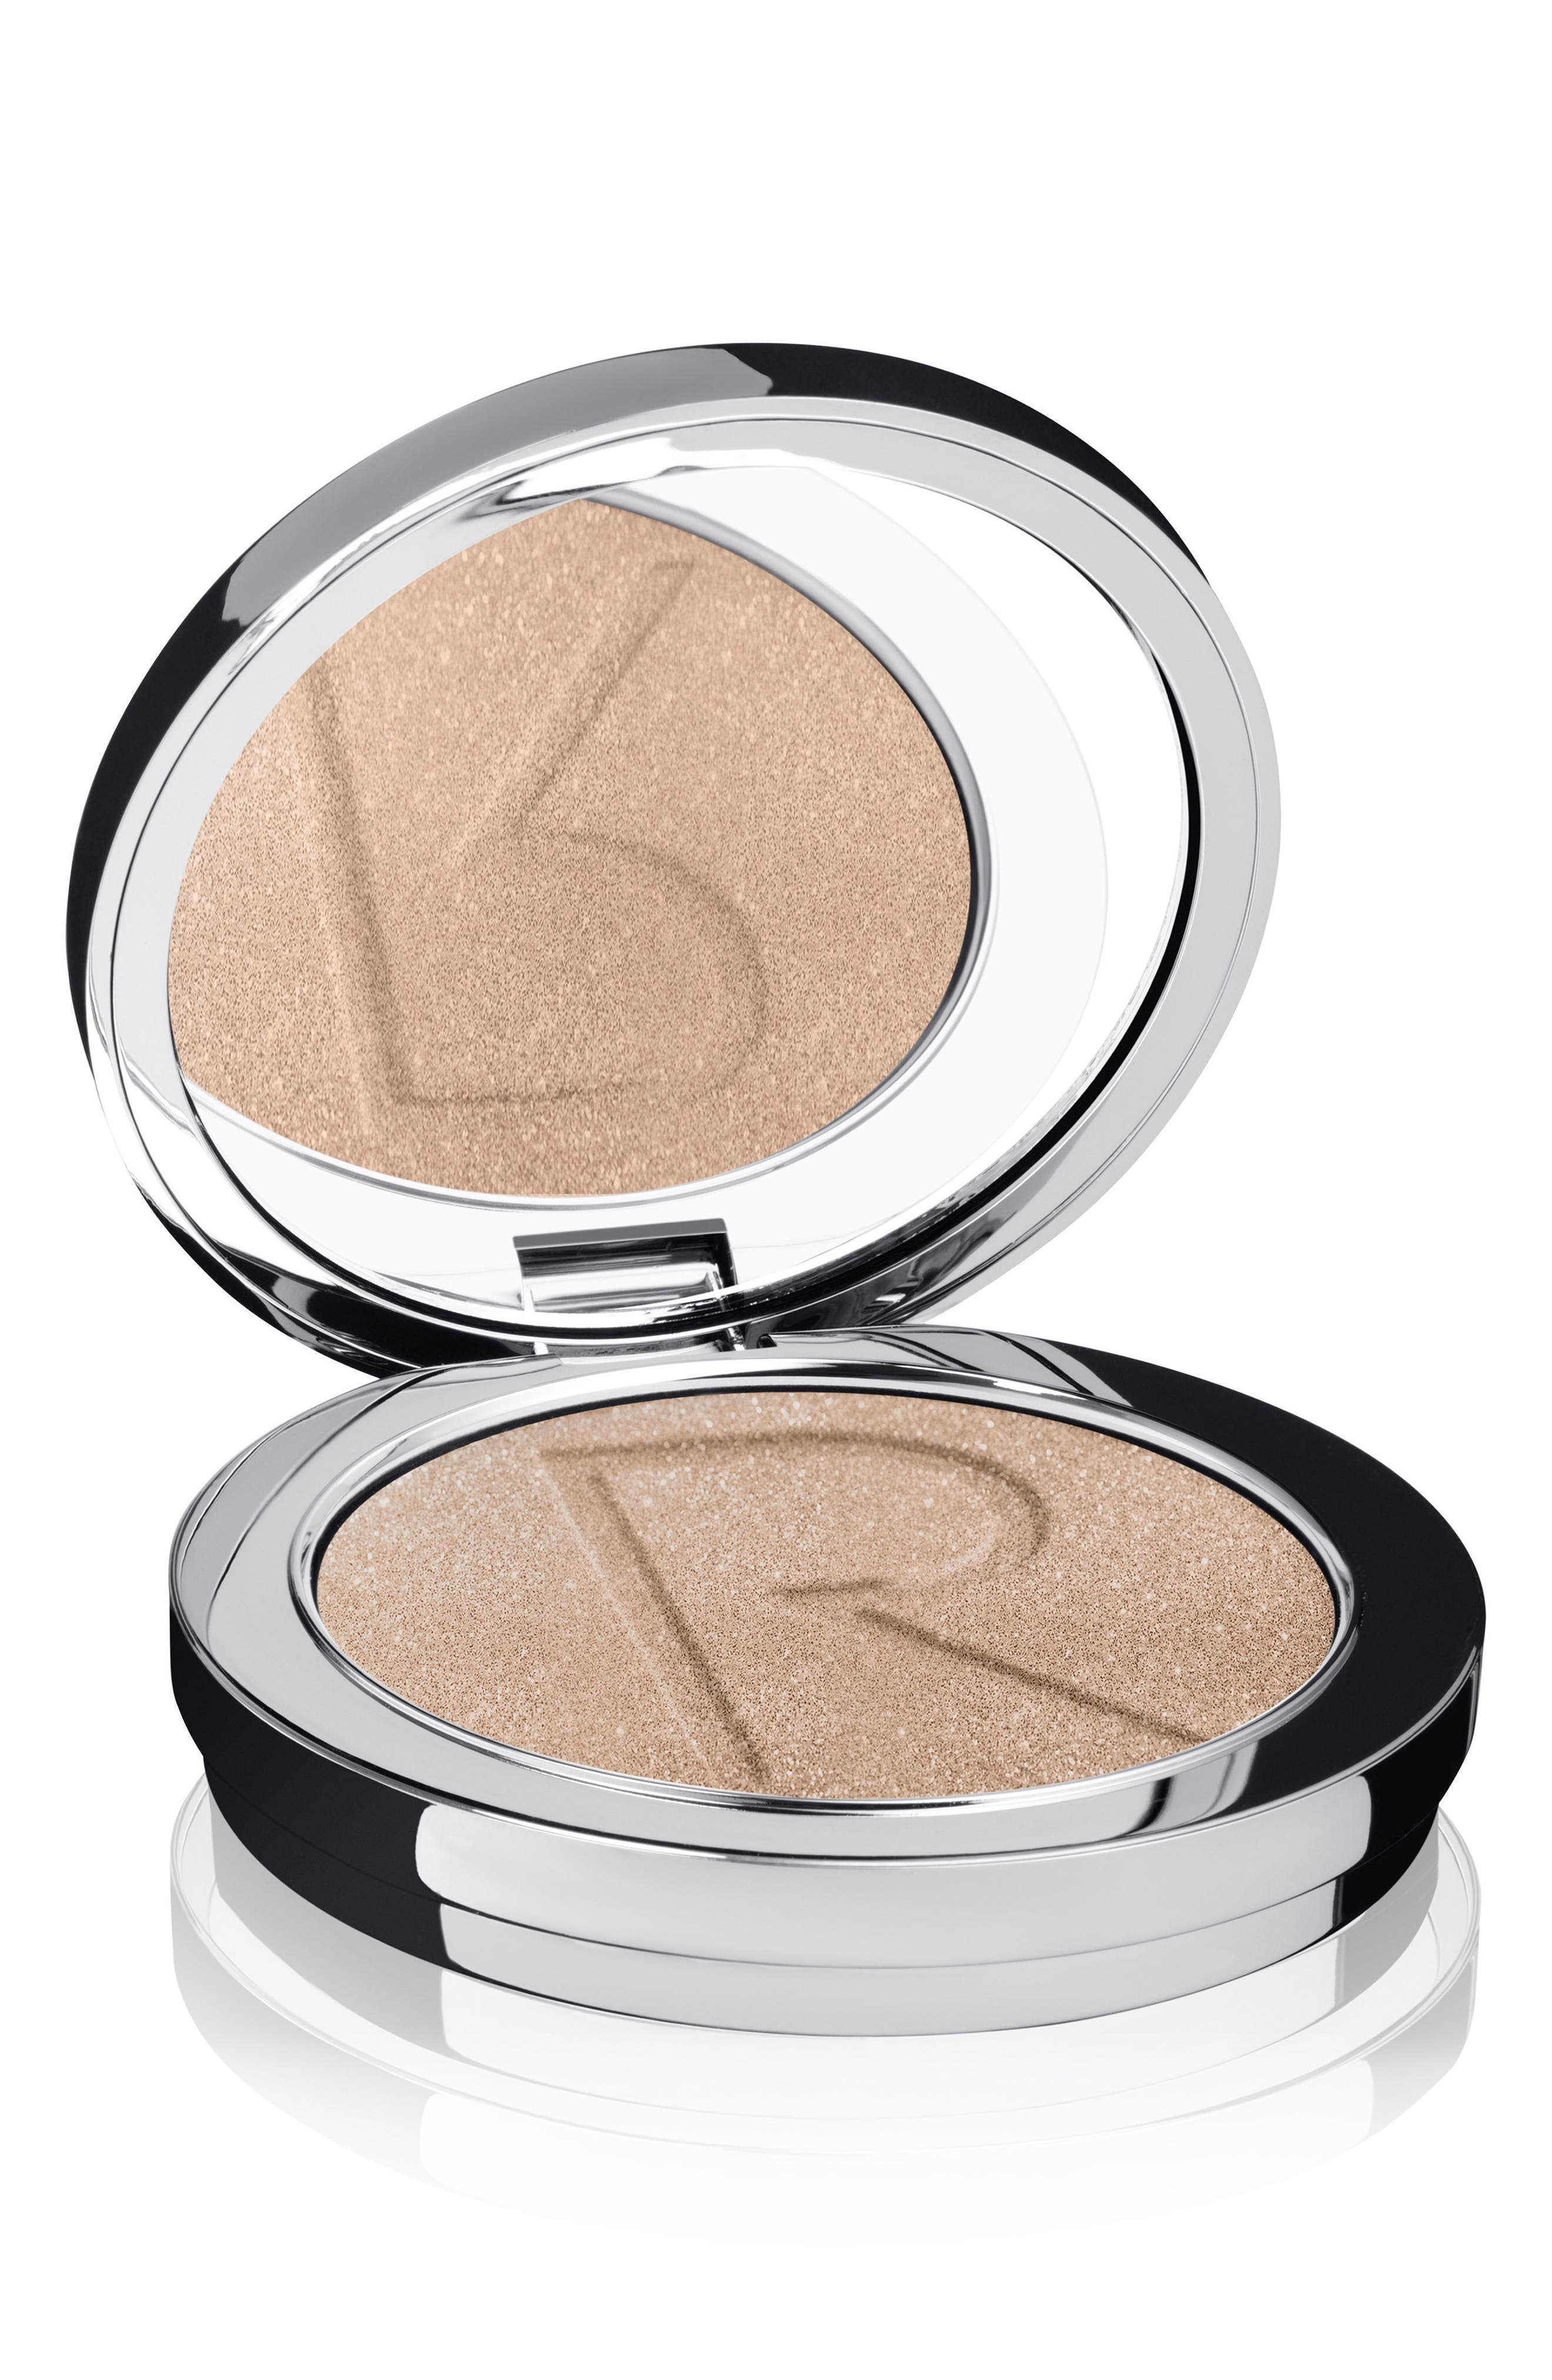 SPACE.NK.apothecary Rodial Instaglam<sup>™</sup> Deluxe Highlighting Powder Compact,                             Main thumbnail 1, color,                             100